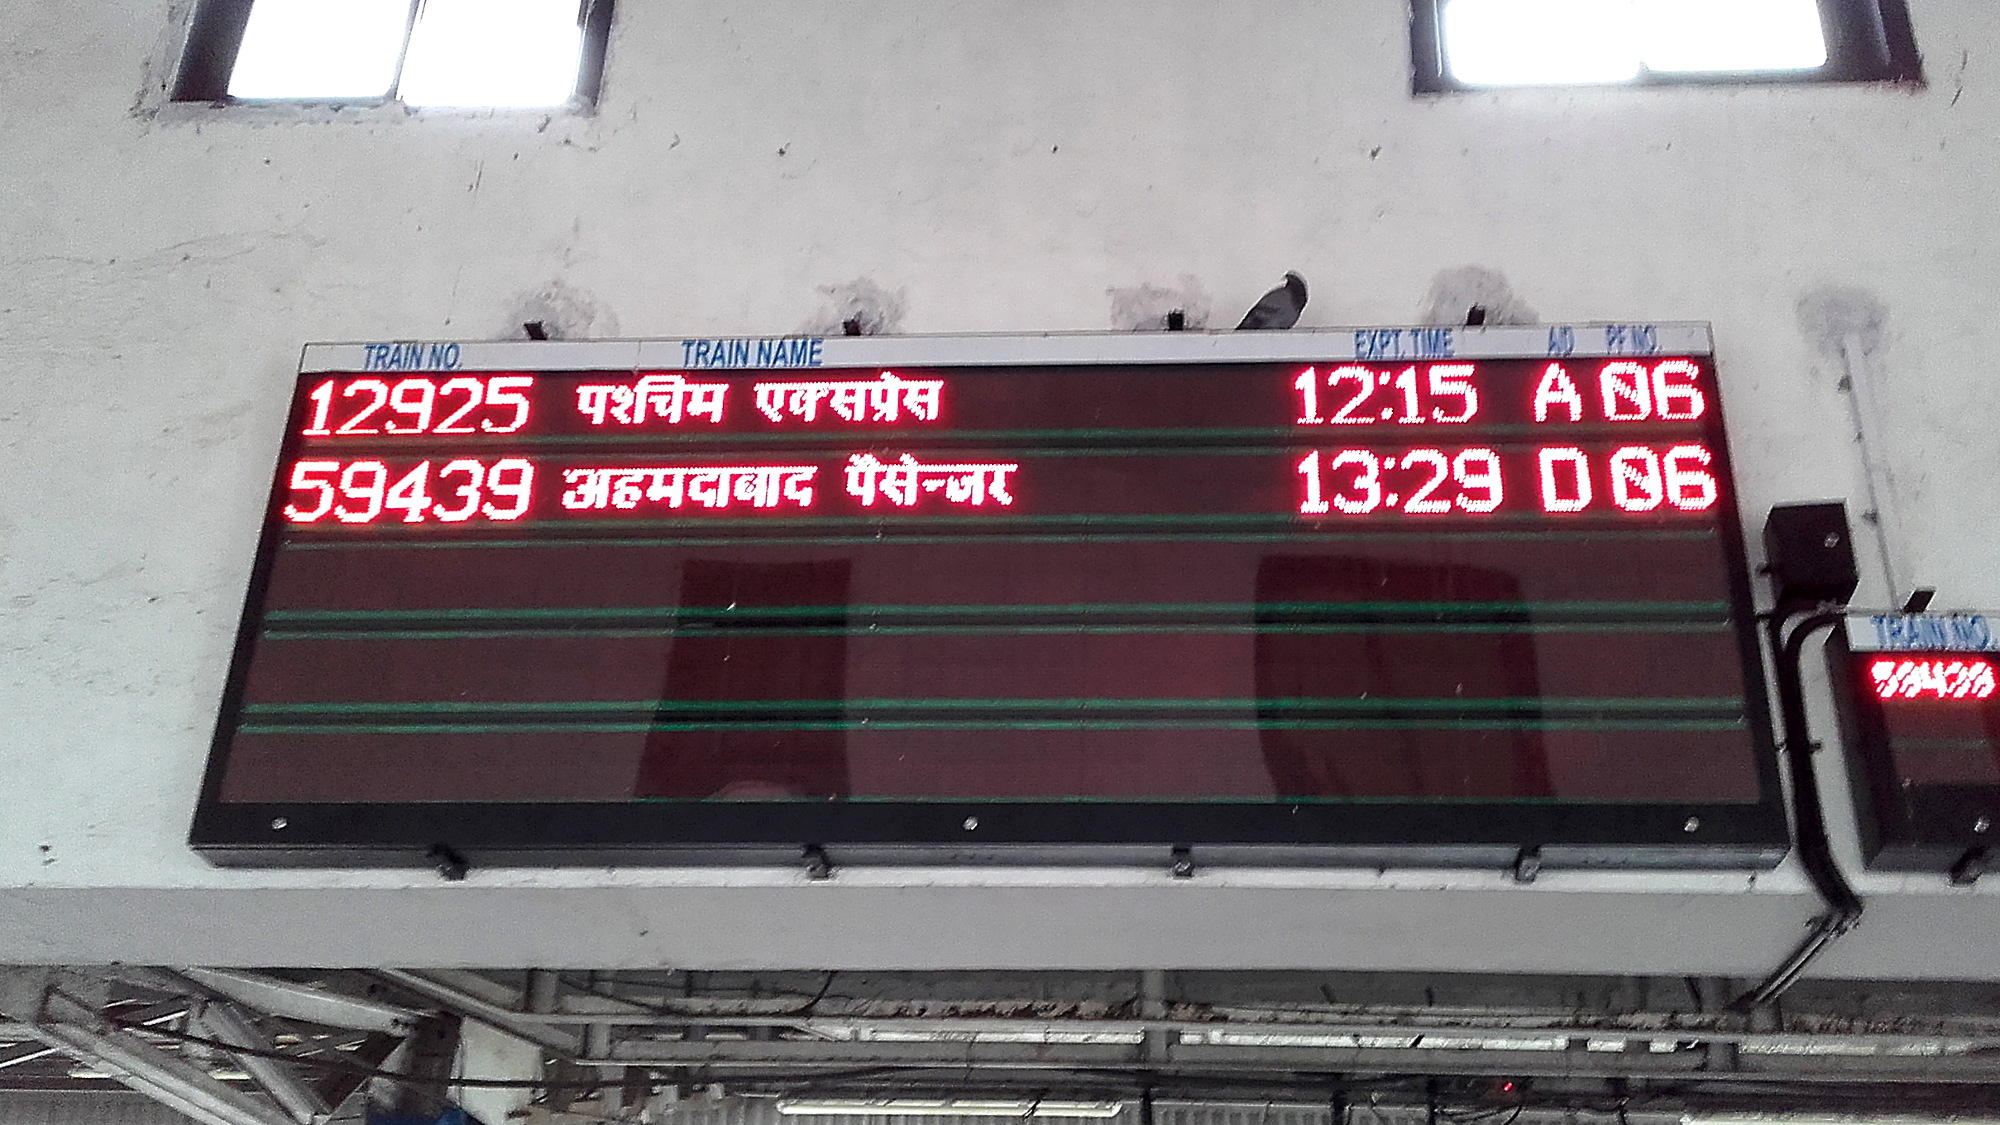 Train timetable with writing in Hindi in Mumbai.